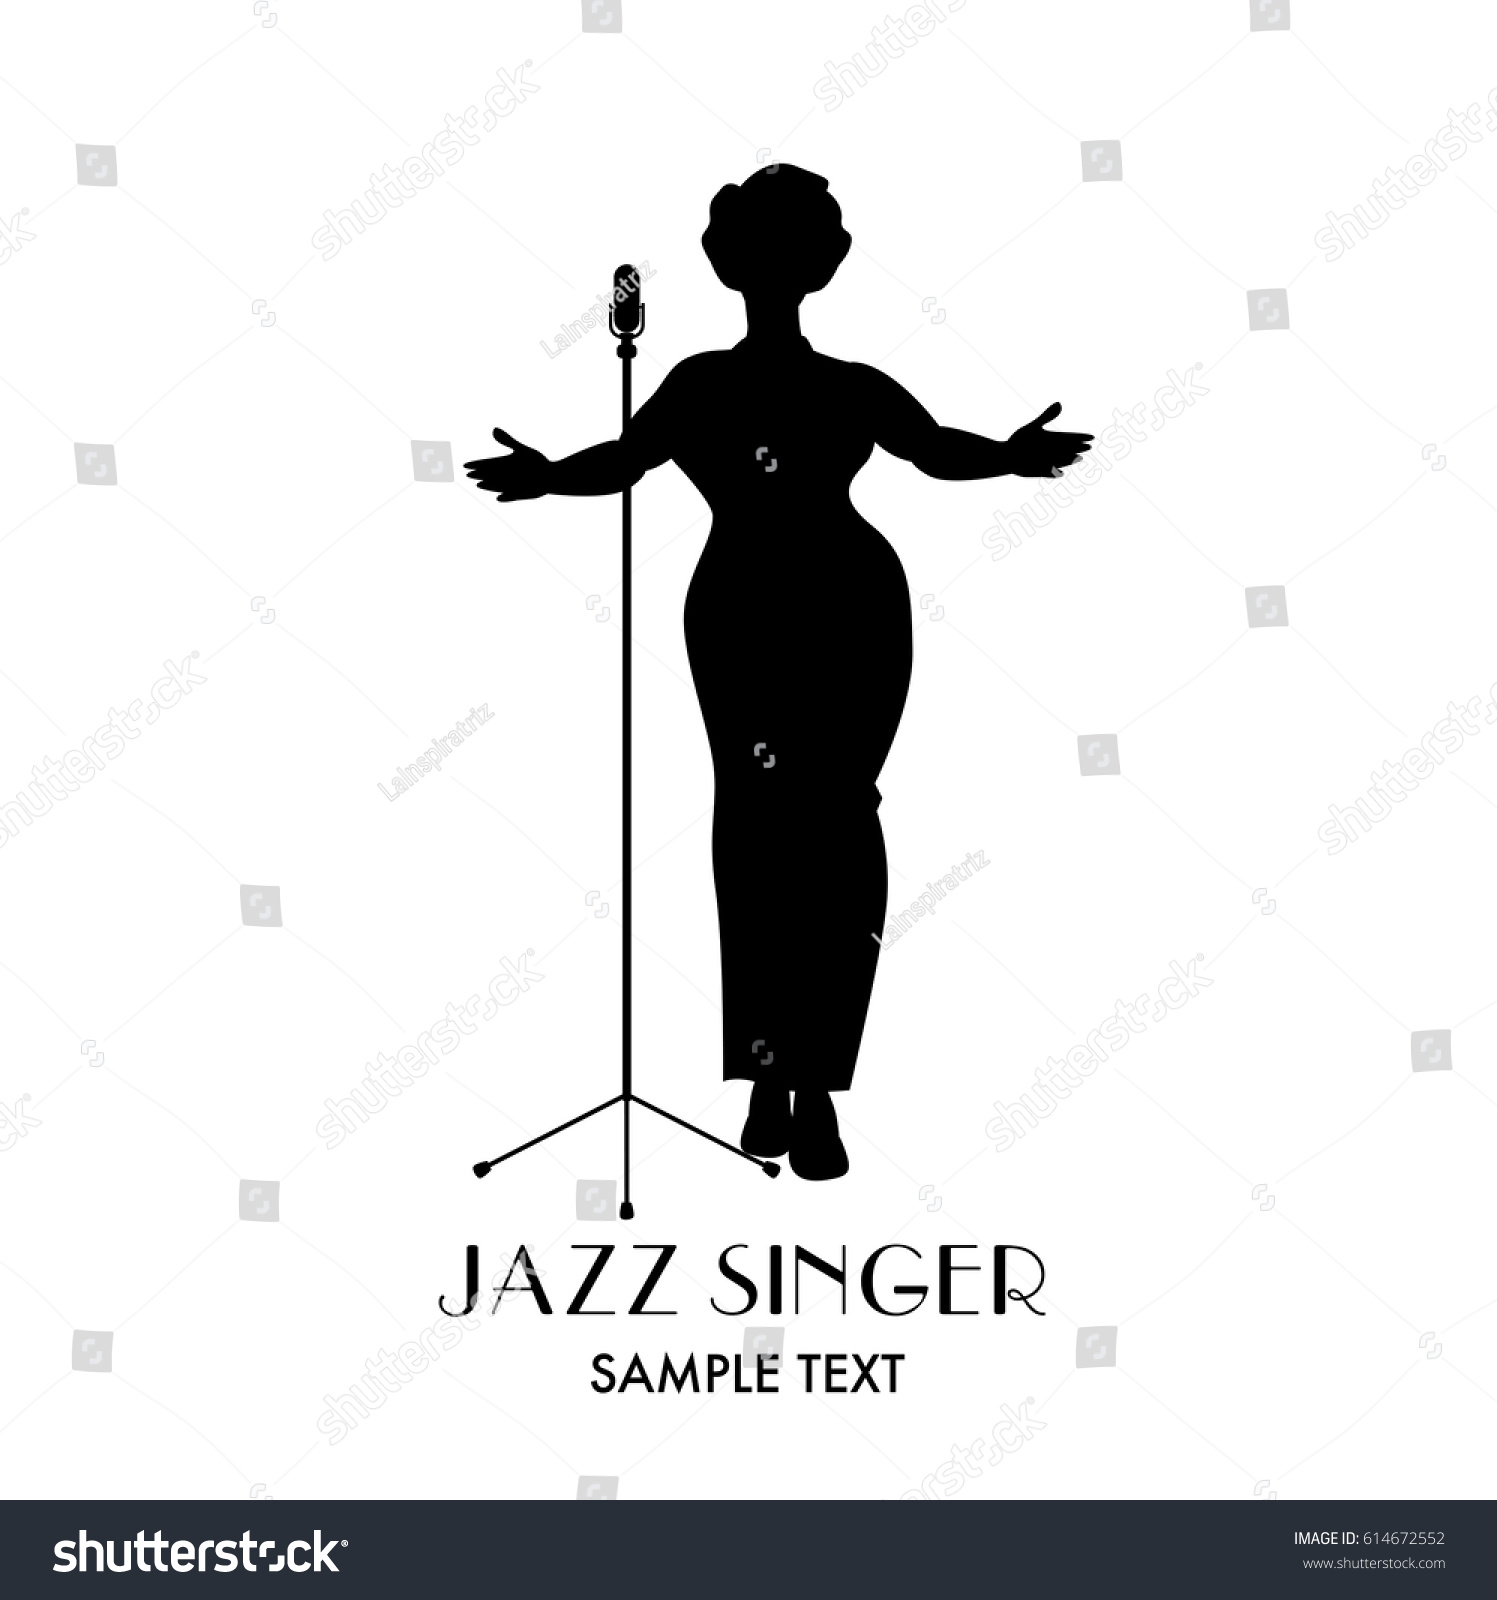 1940s Music Stock Images, Royalty-Free Images & Vectors     Female